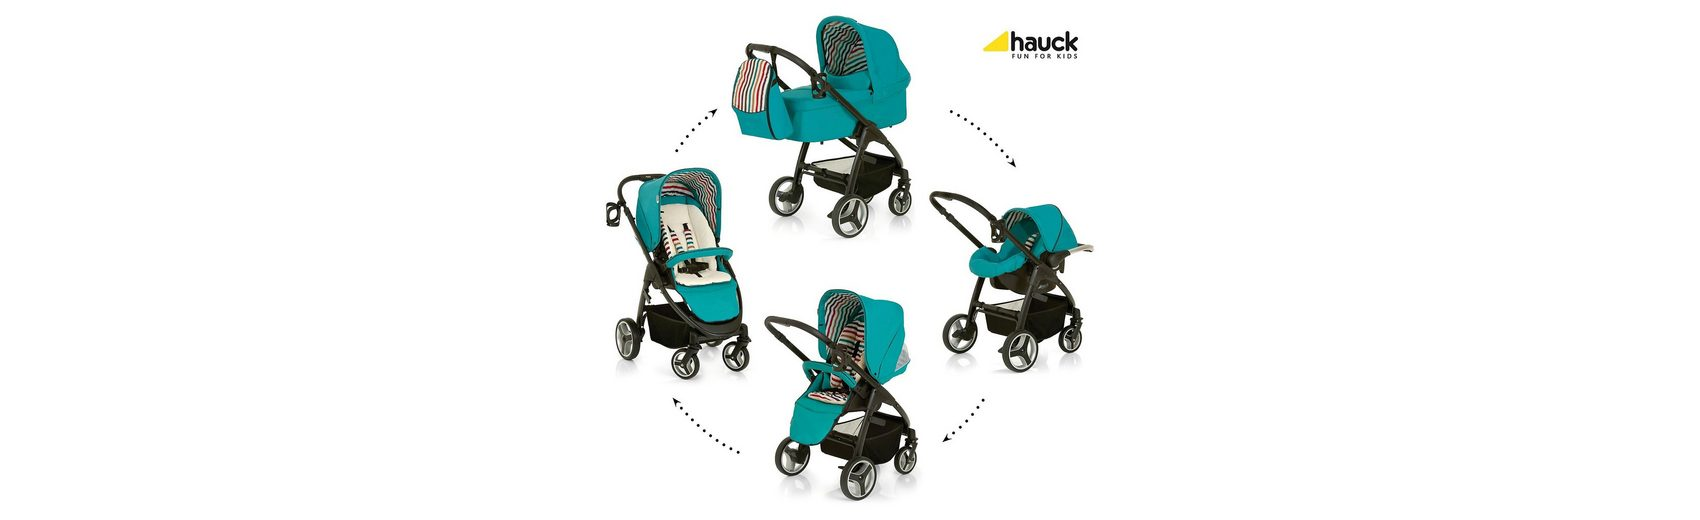 Hauck Kombi Kinderwagen Lacrosse All In One, Everglade, 2016